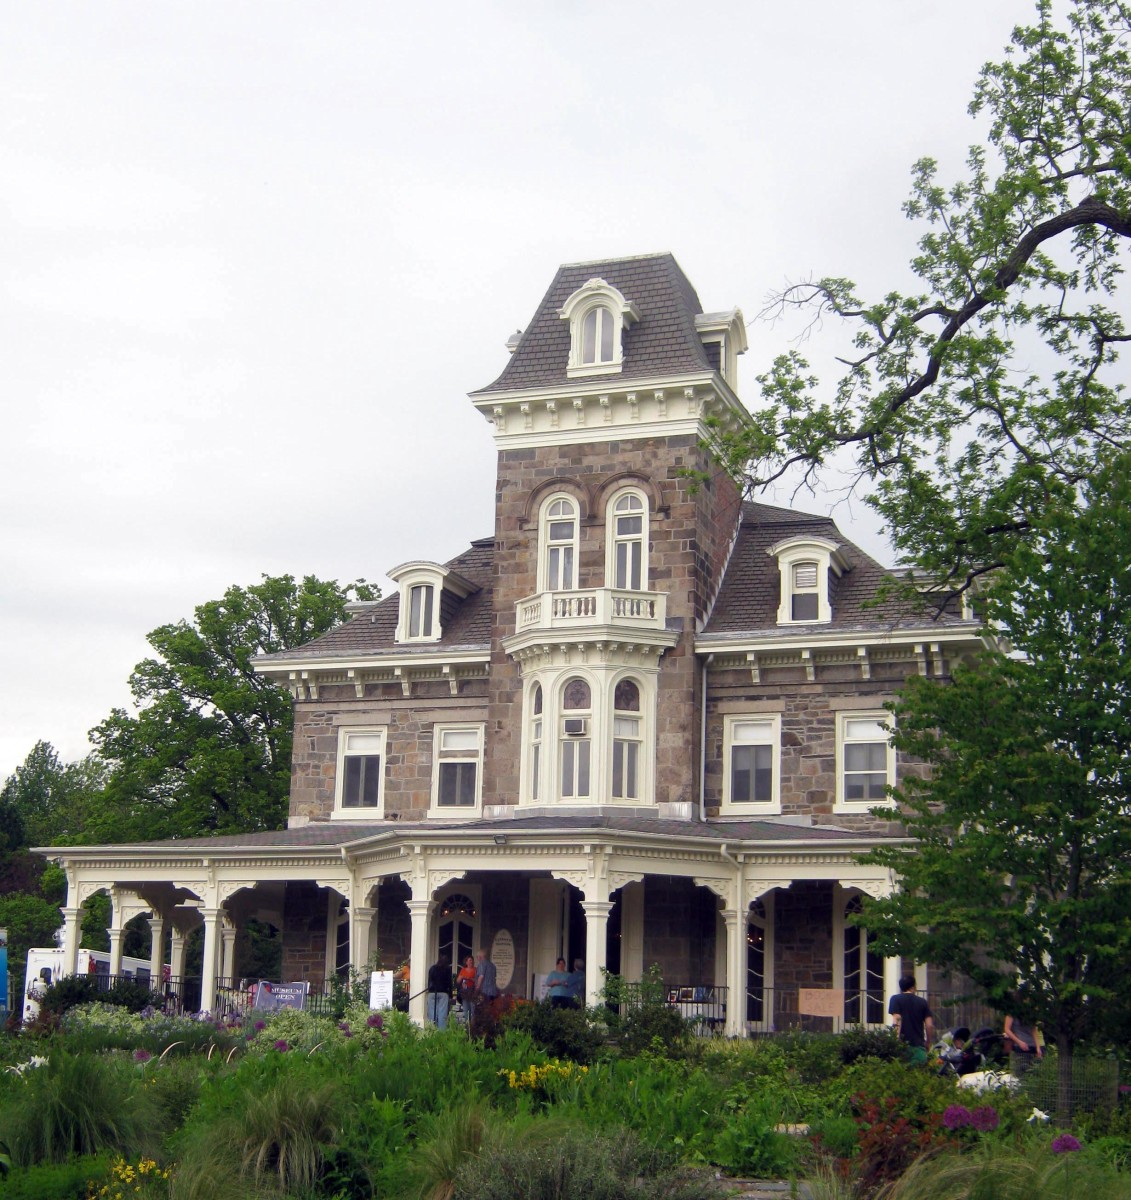 Baltimore's Best Victorian Mansion and Public Garden Cylburn Arboretum